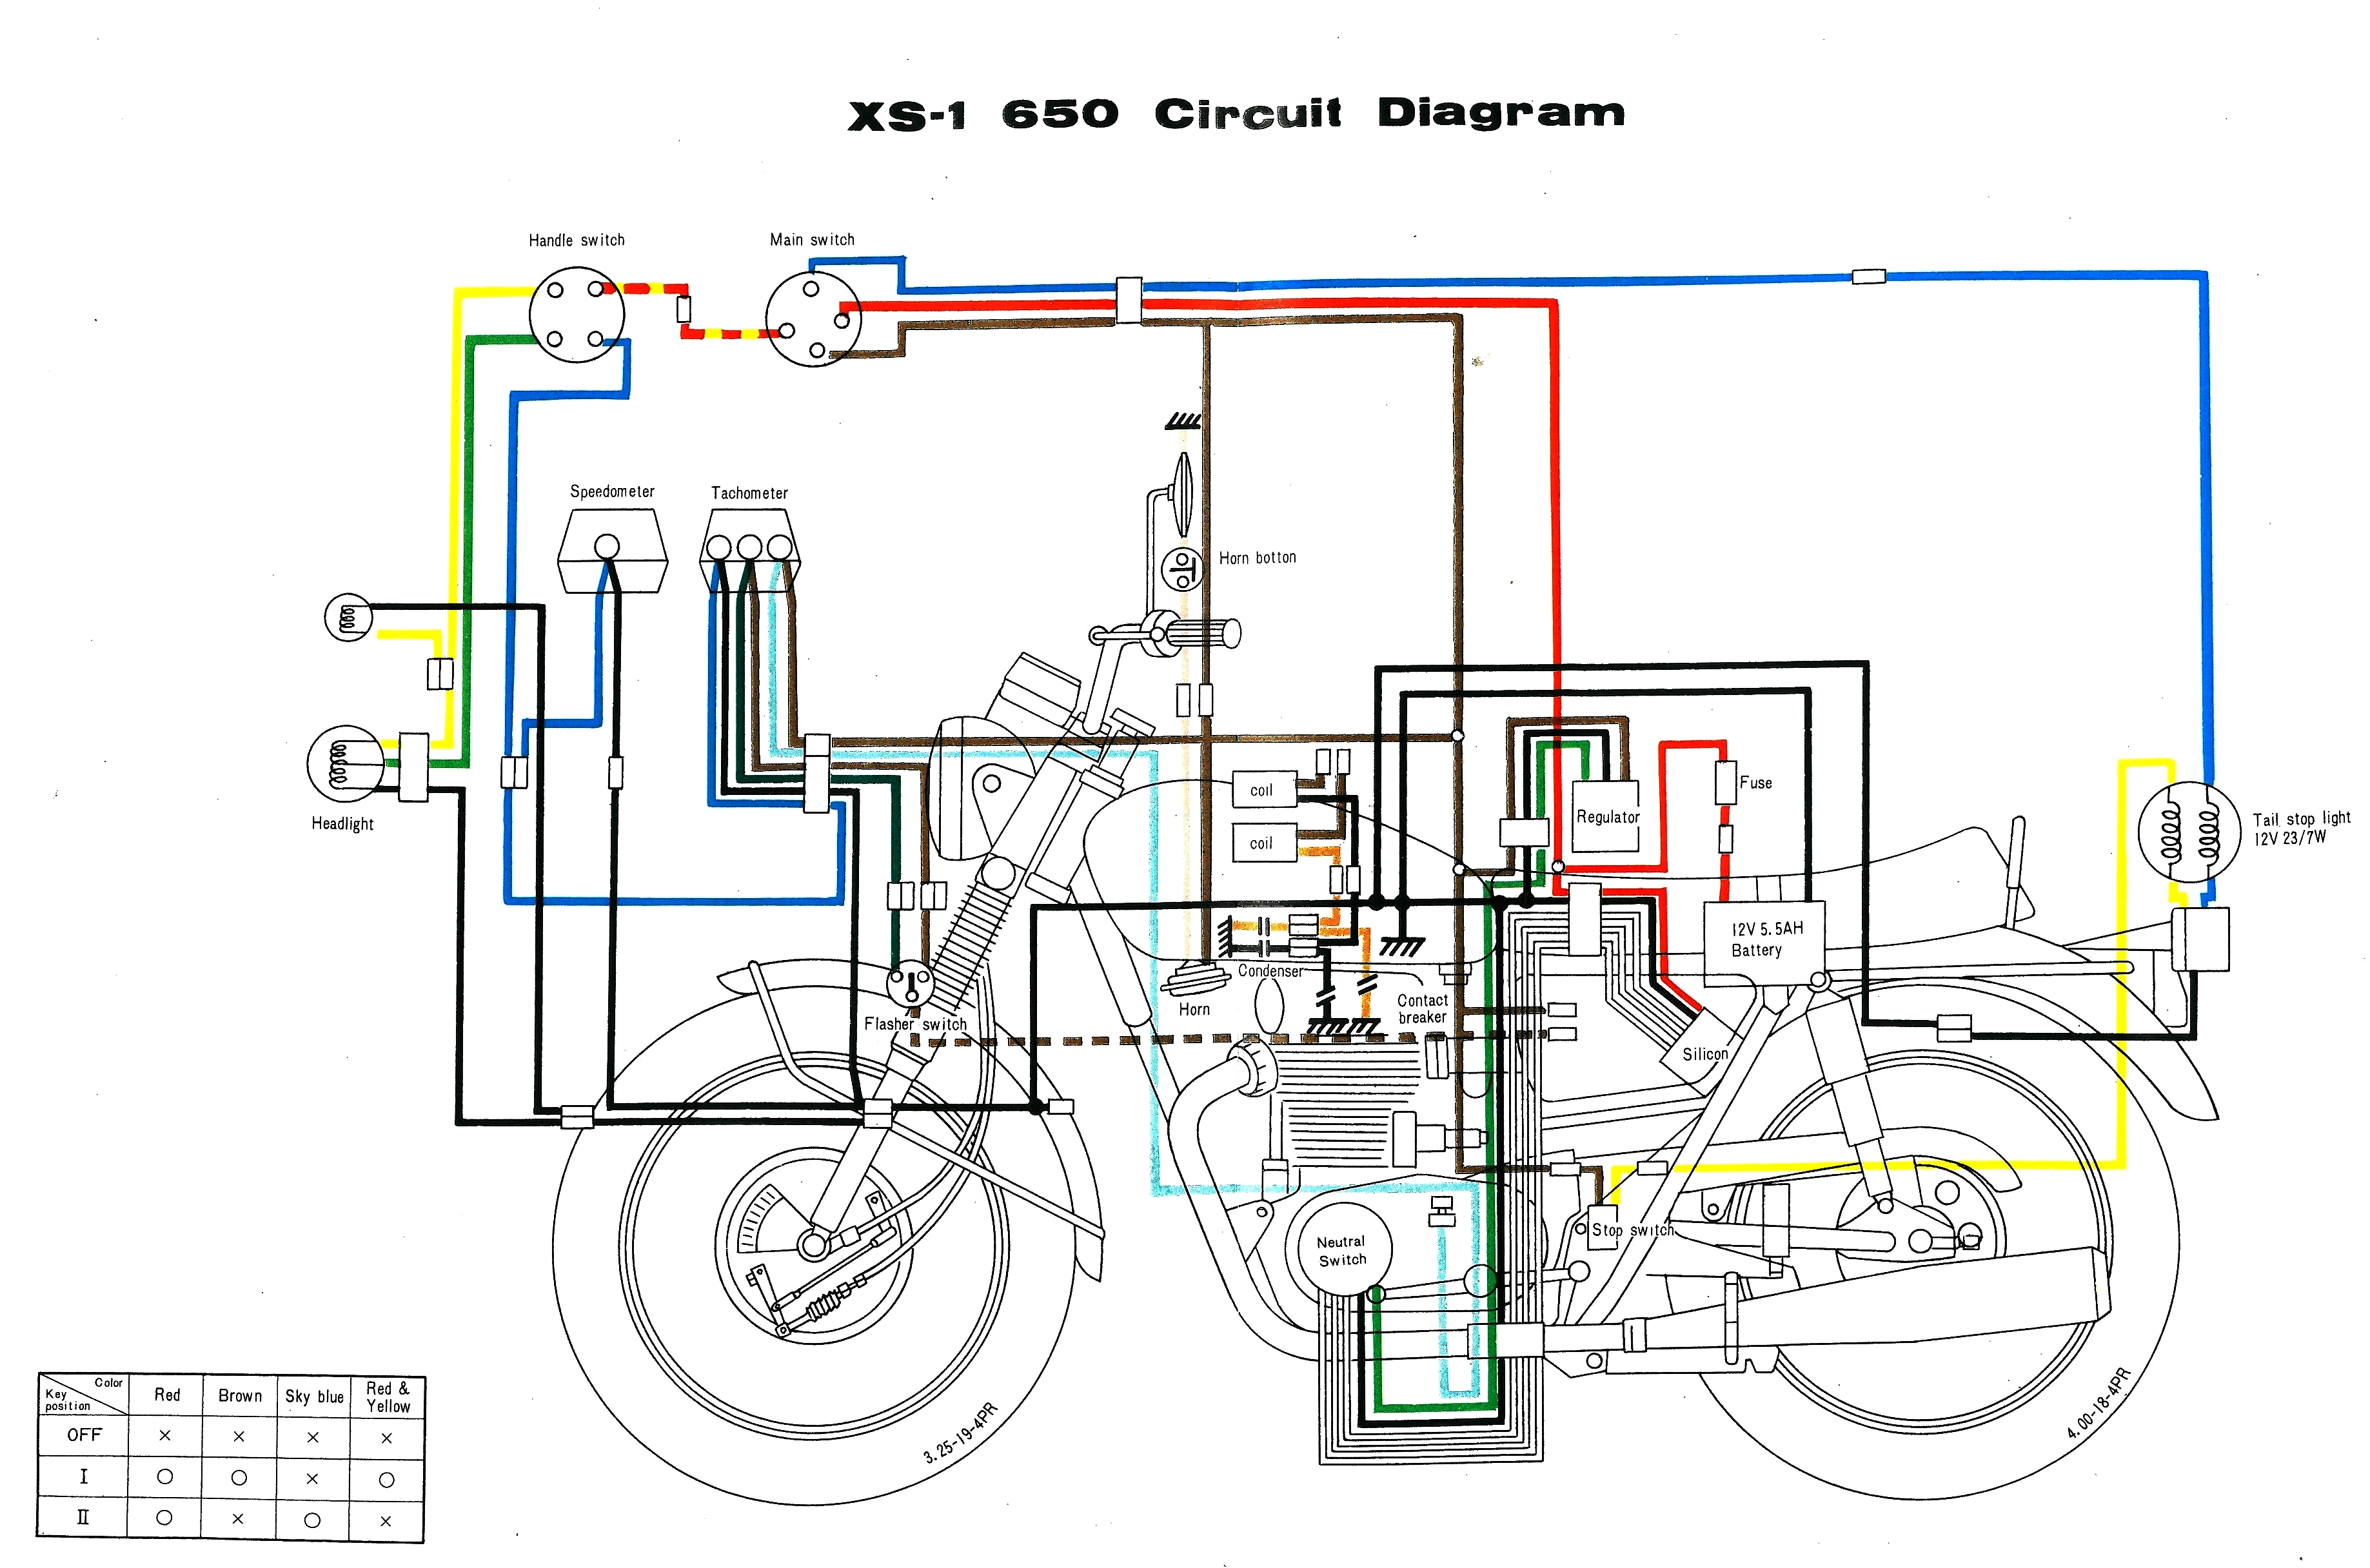 Beautiful Wiring Model Schematic 580 32782 Pictures Inspiration ...